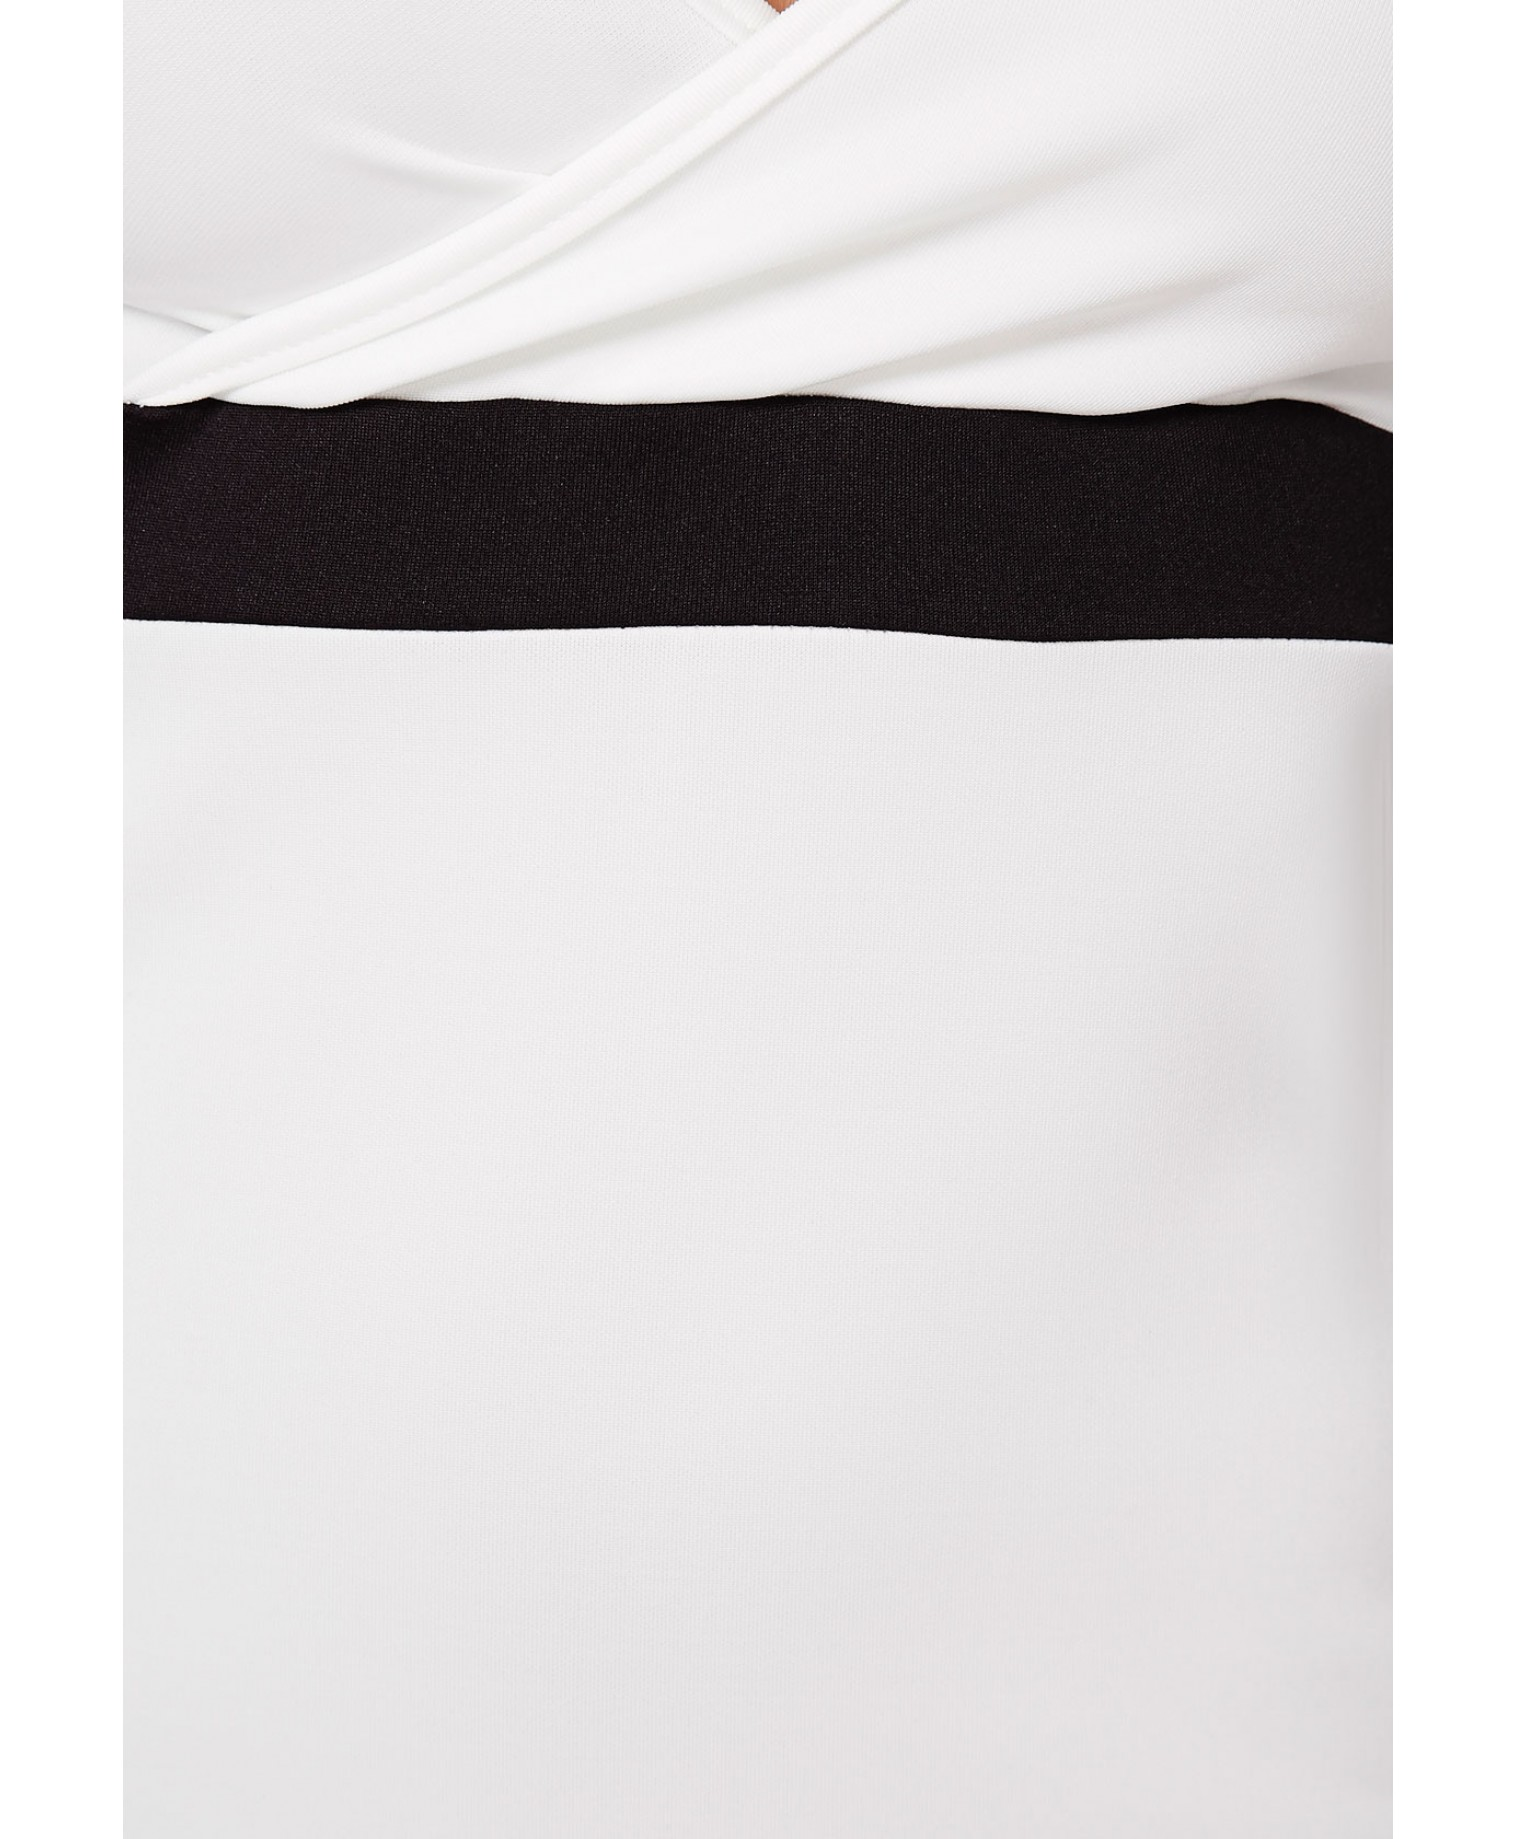 Verda wrap over monochrome contrast midi dress 6